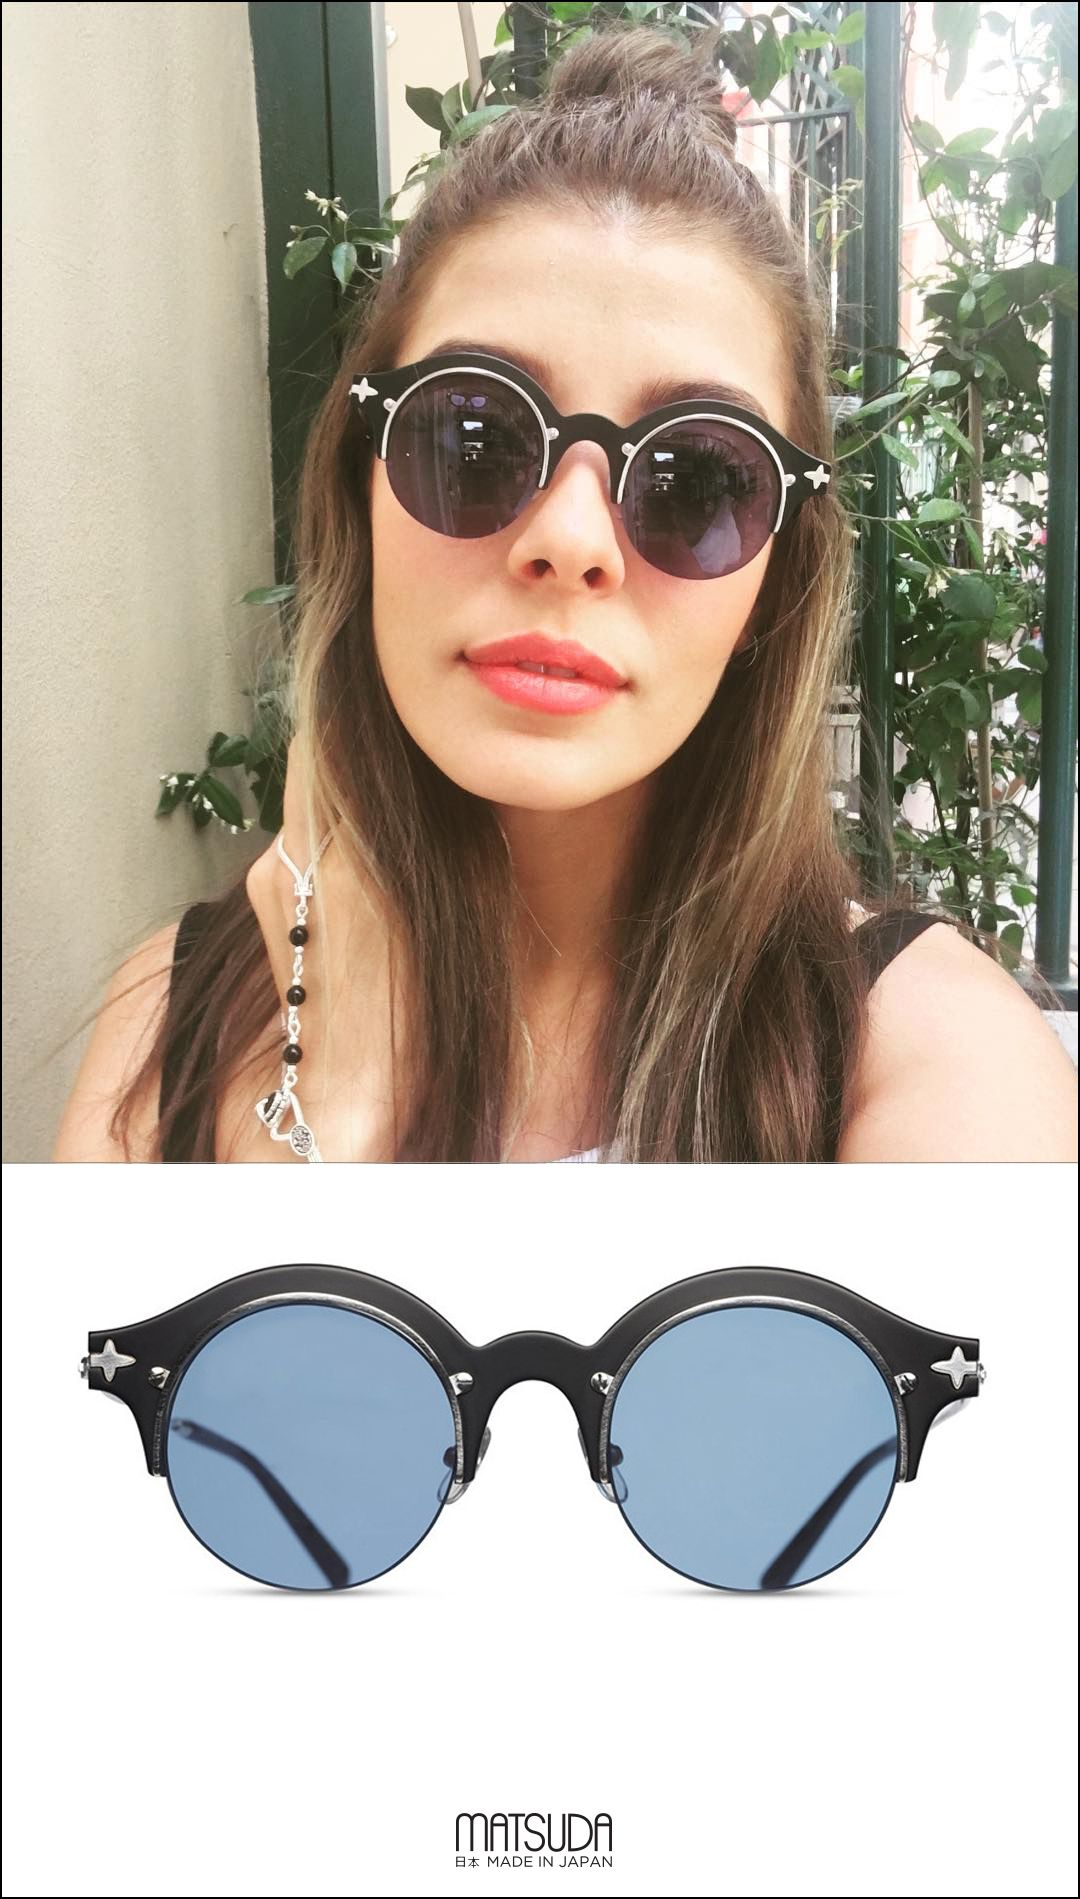 8e2b5ae4d8 Turkish Actress Selin Şekerci wearing the Matsuda Sunglasses